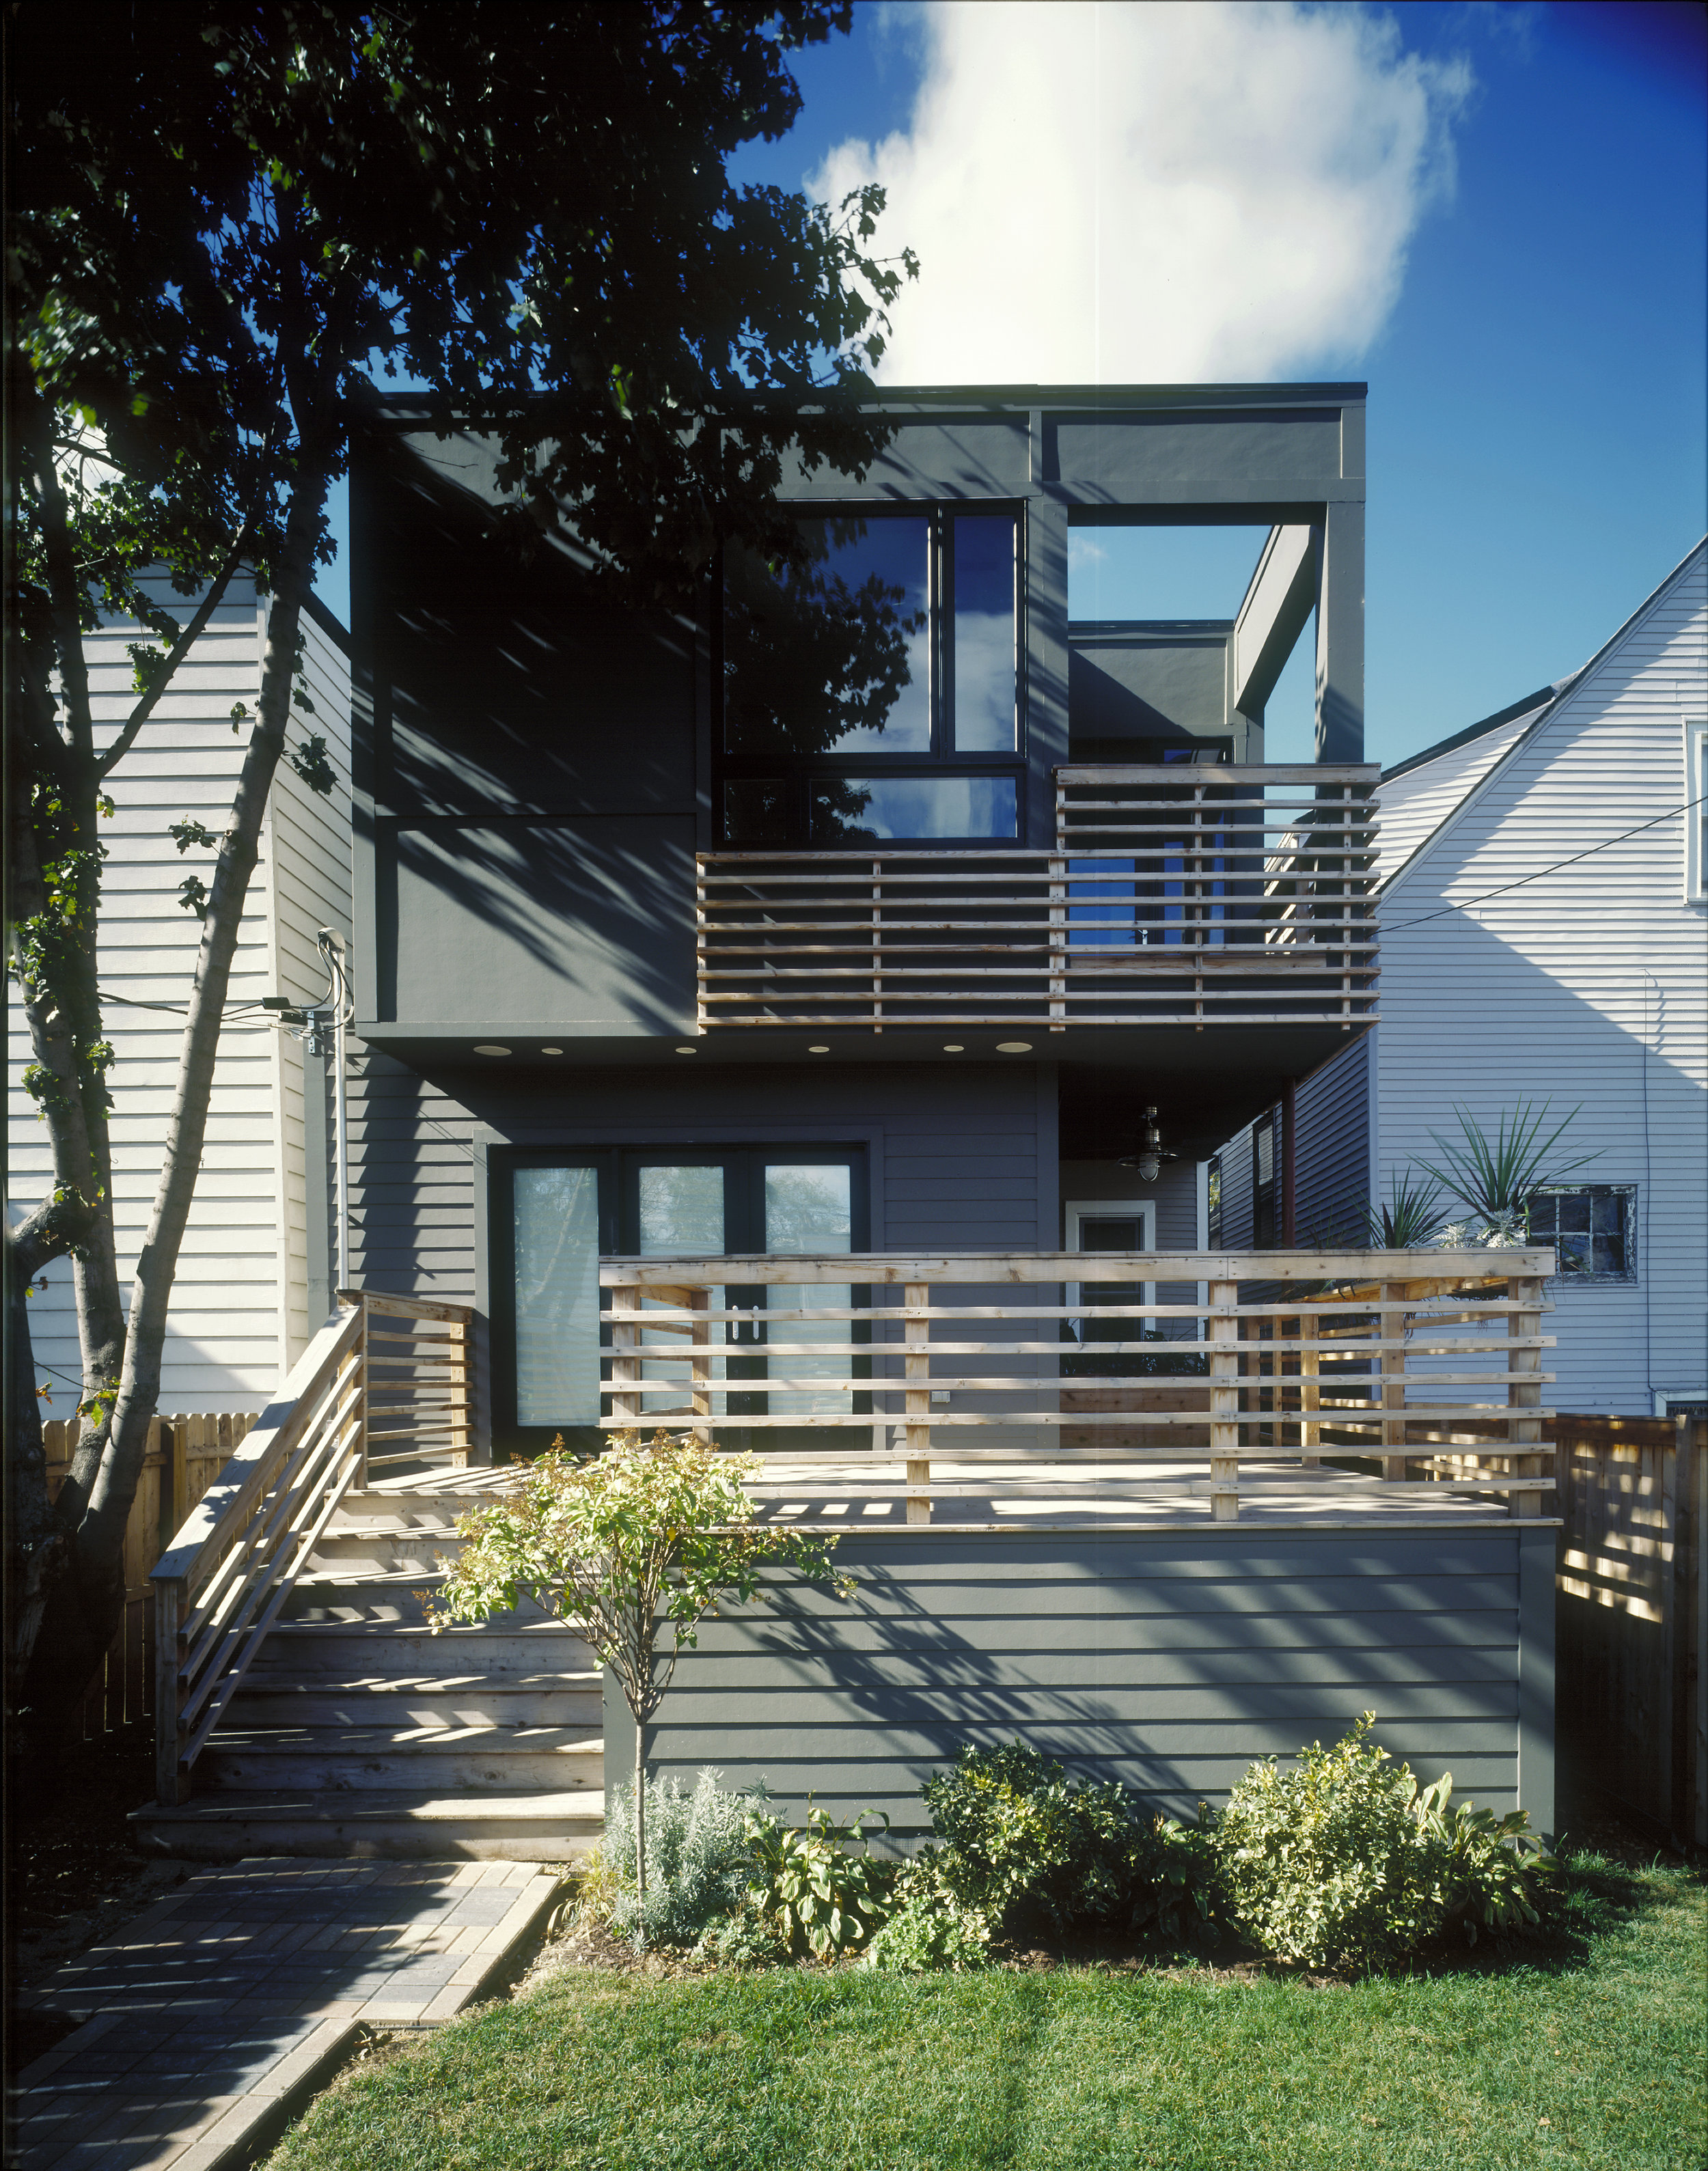 Logan_Square_Residence_Exterior_Rear_Elevation.jpg